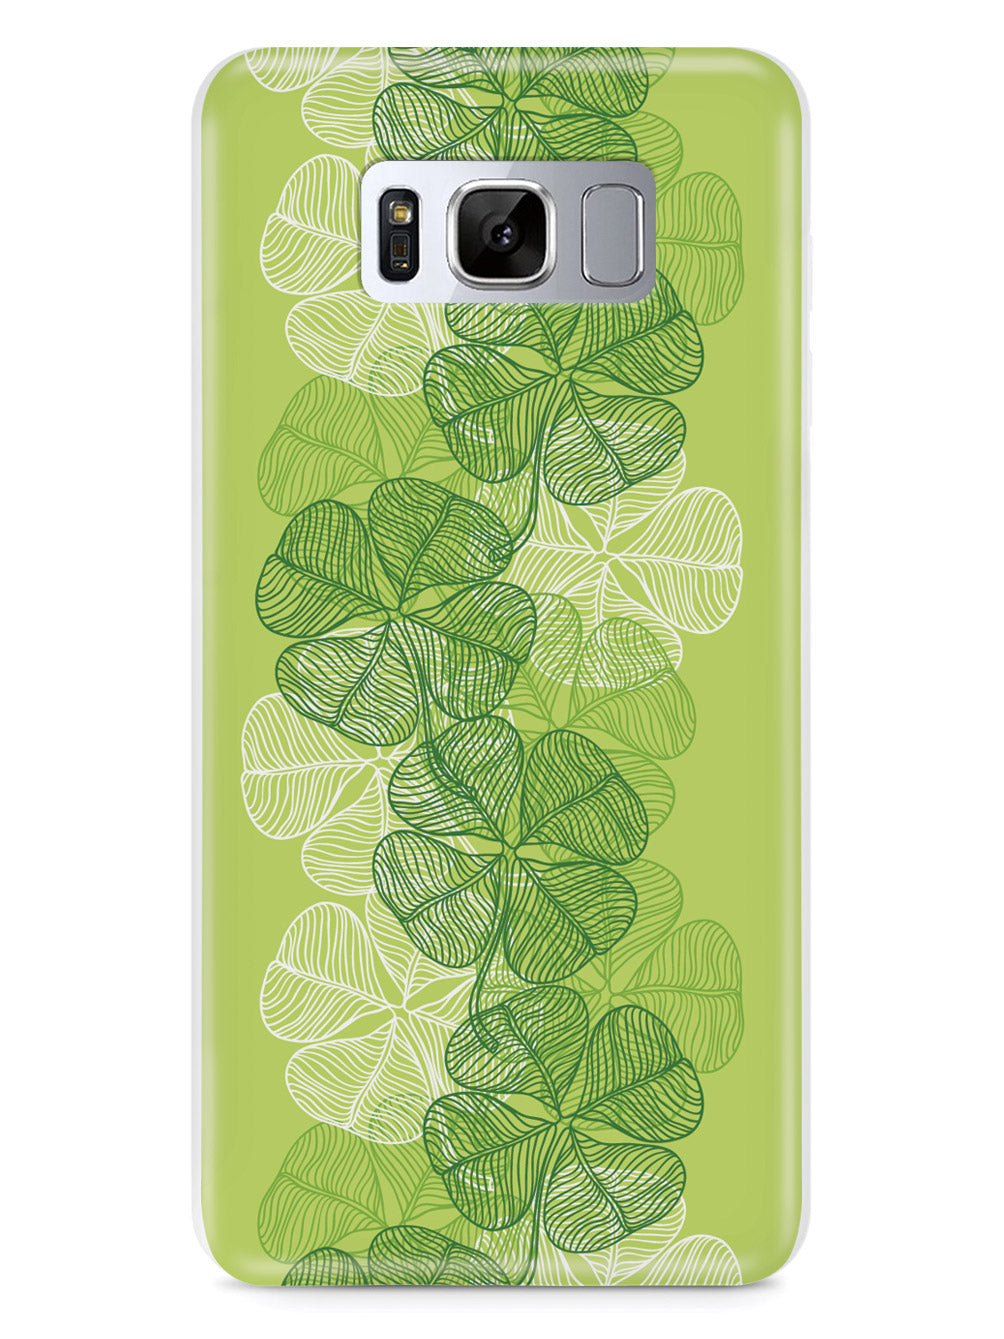 Four-Leaf Clover Lineart Case